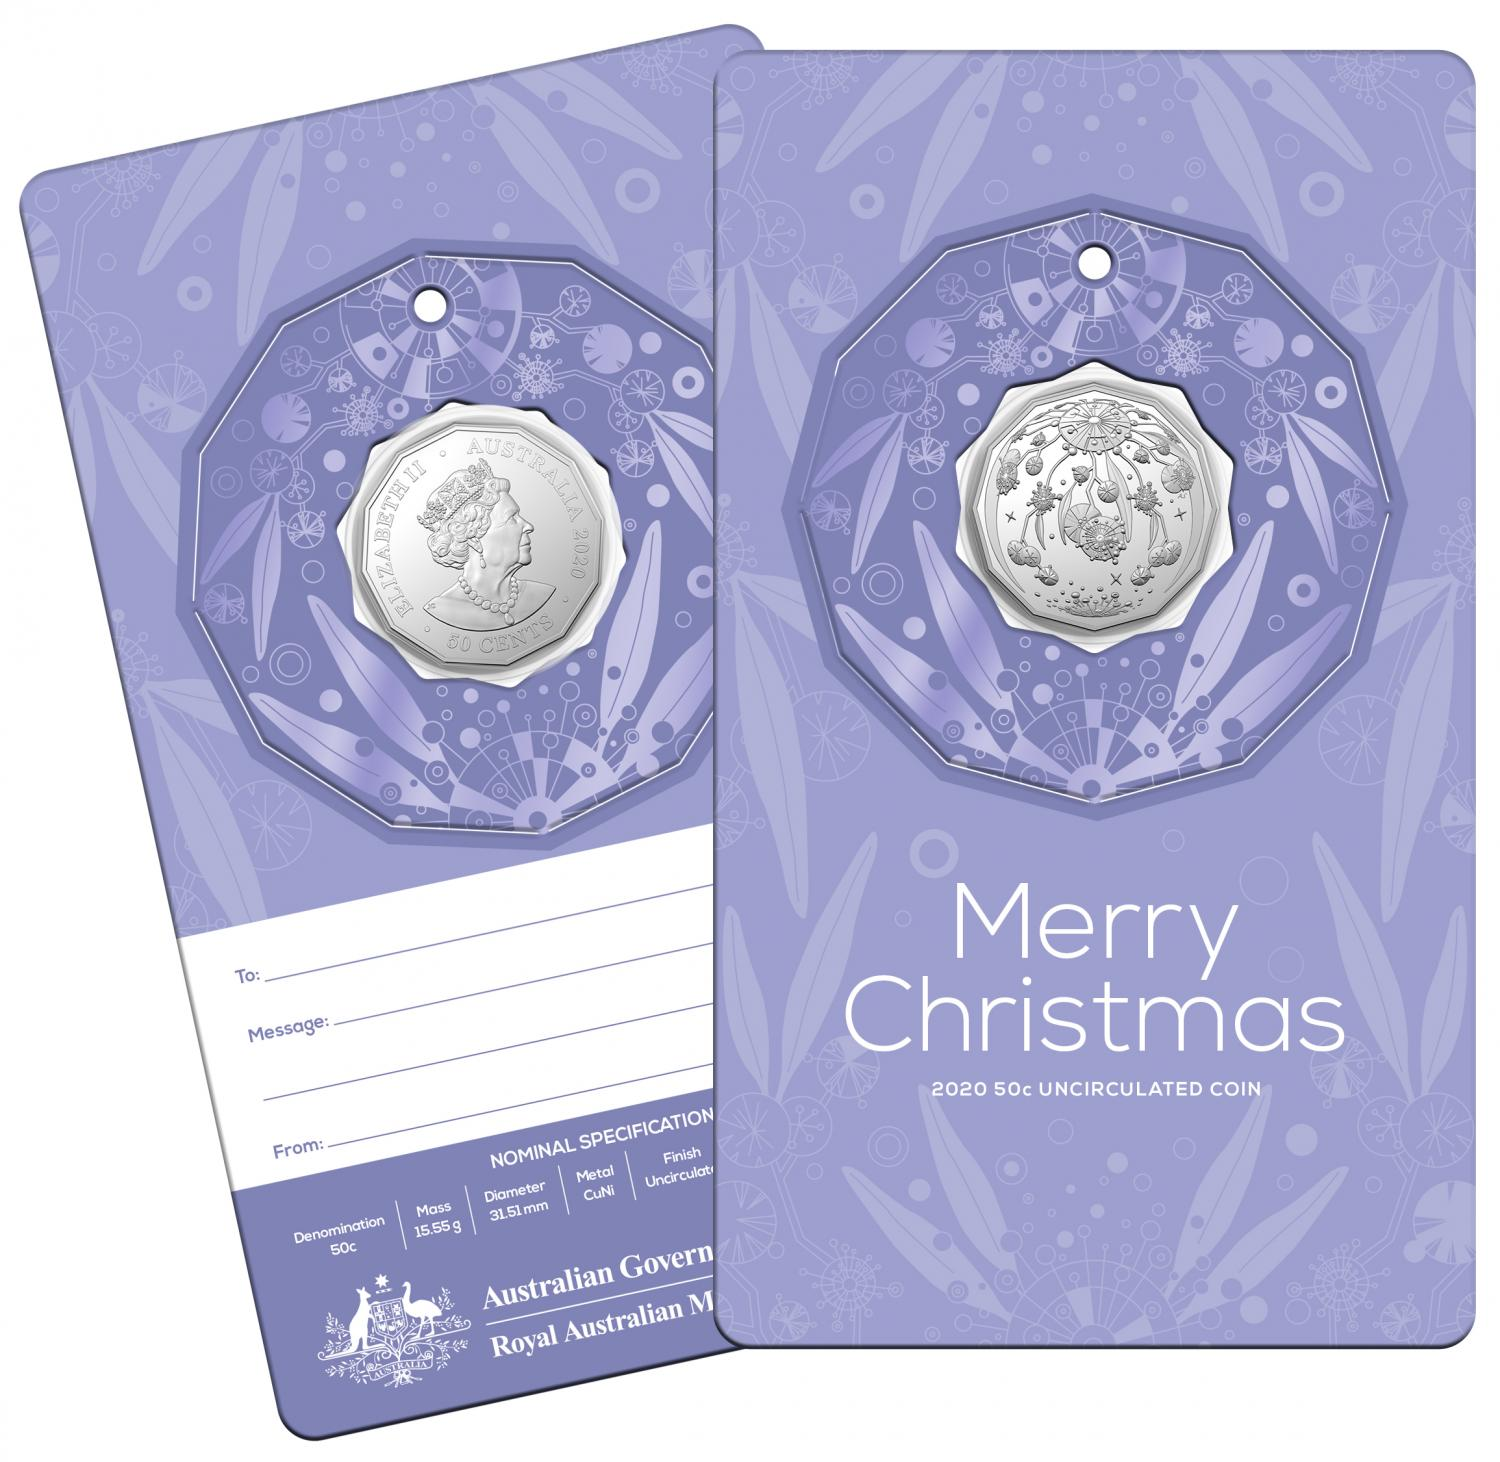 Thumbnail for 2020 Christmas .50c UNC Coin - Purple Card Decoration